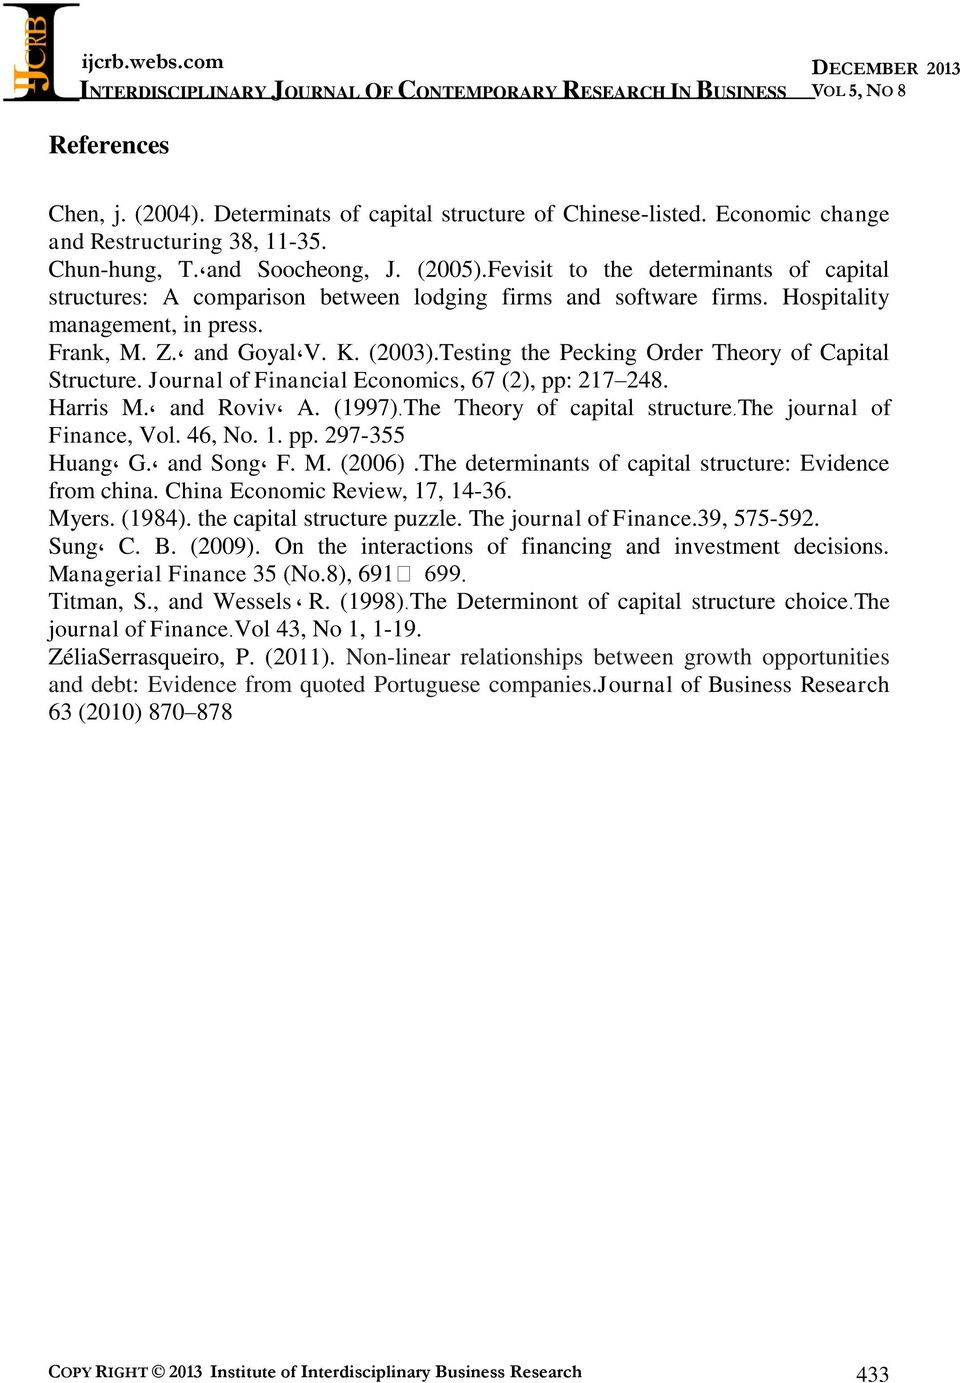 Testing the Pecking Order Theory of Capital Structure. Journal of Financial Economics, 67 (2), pp: 217 248. Harris M. and Roviv A. (1997).The Theory of capital structure.the journal of Finance, Vol.